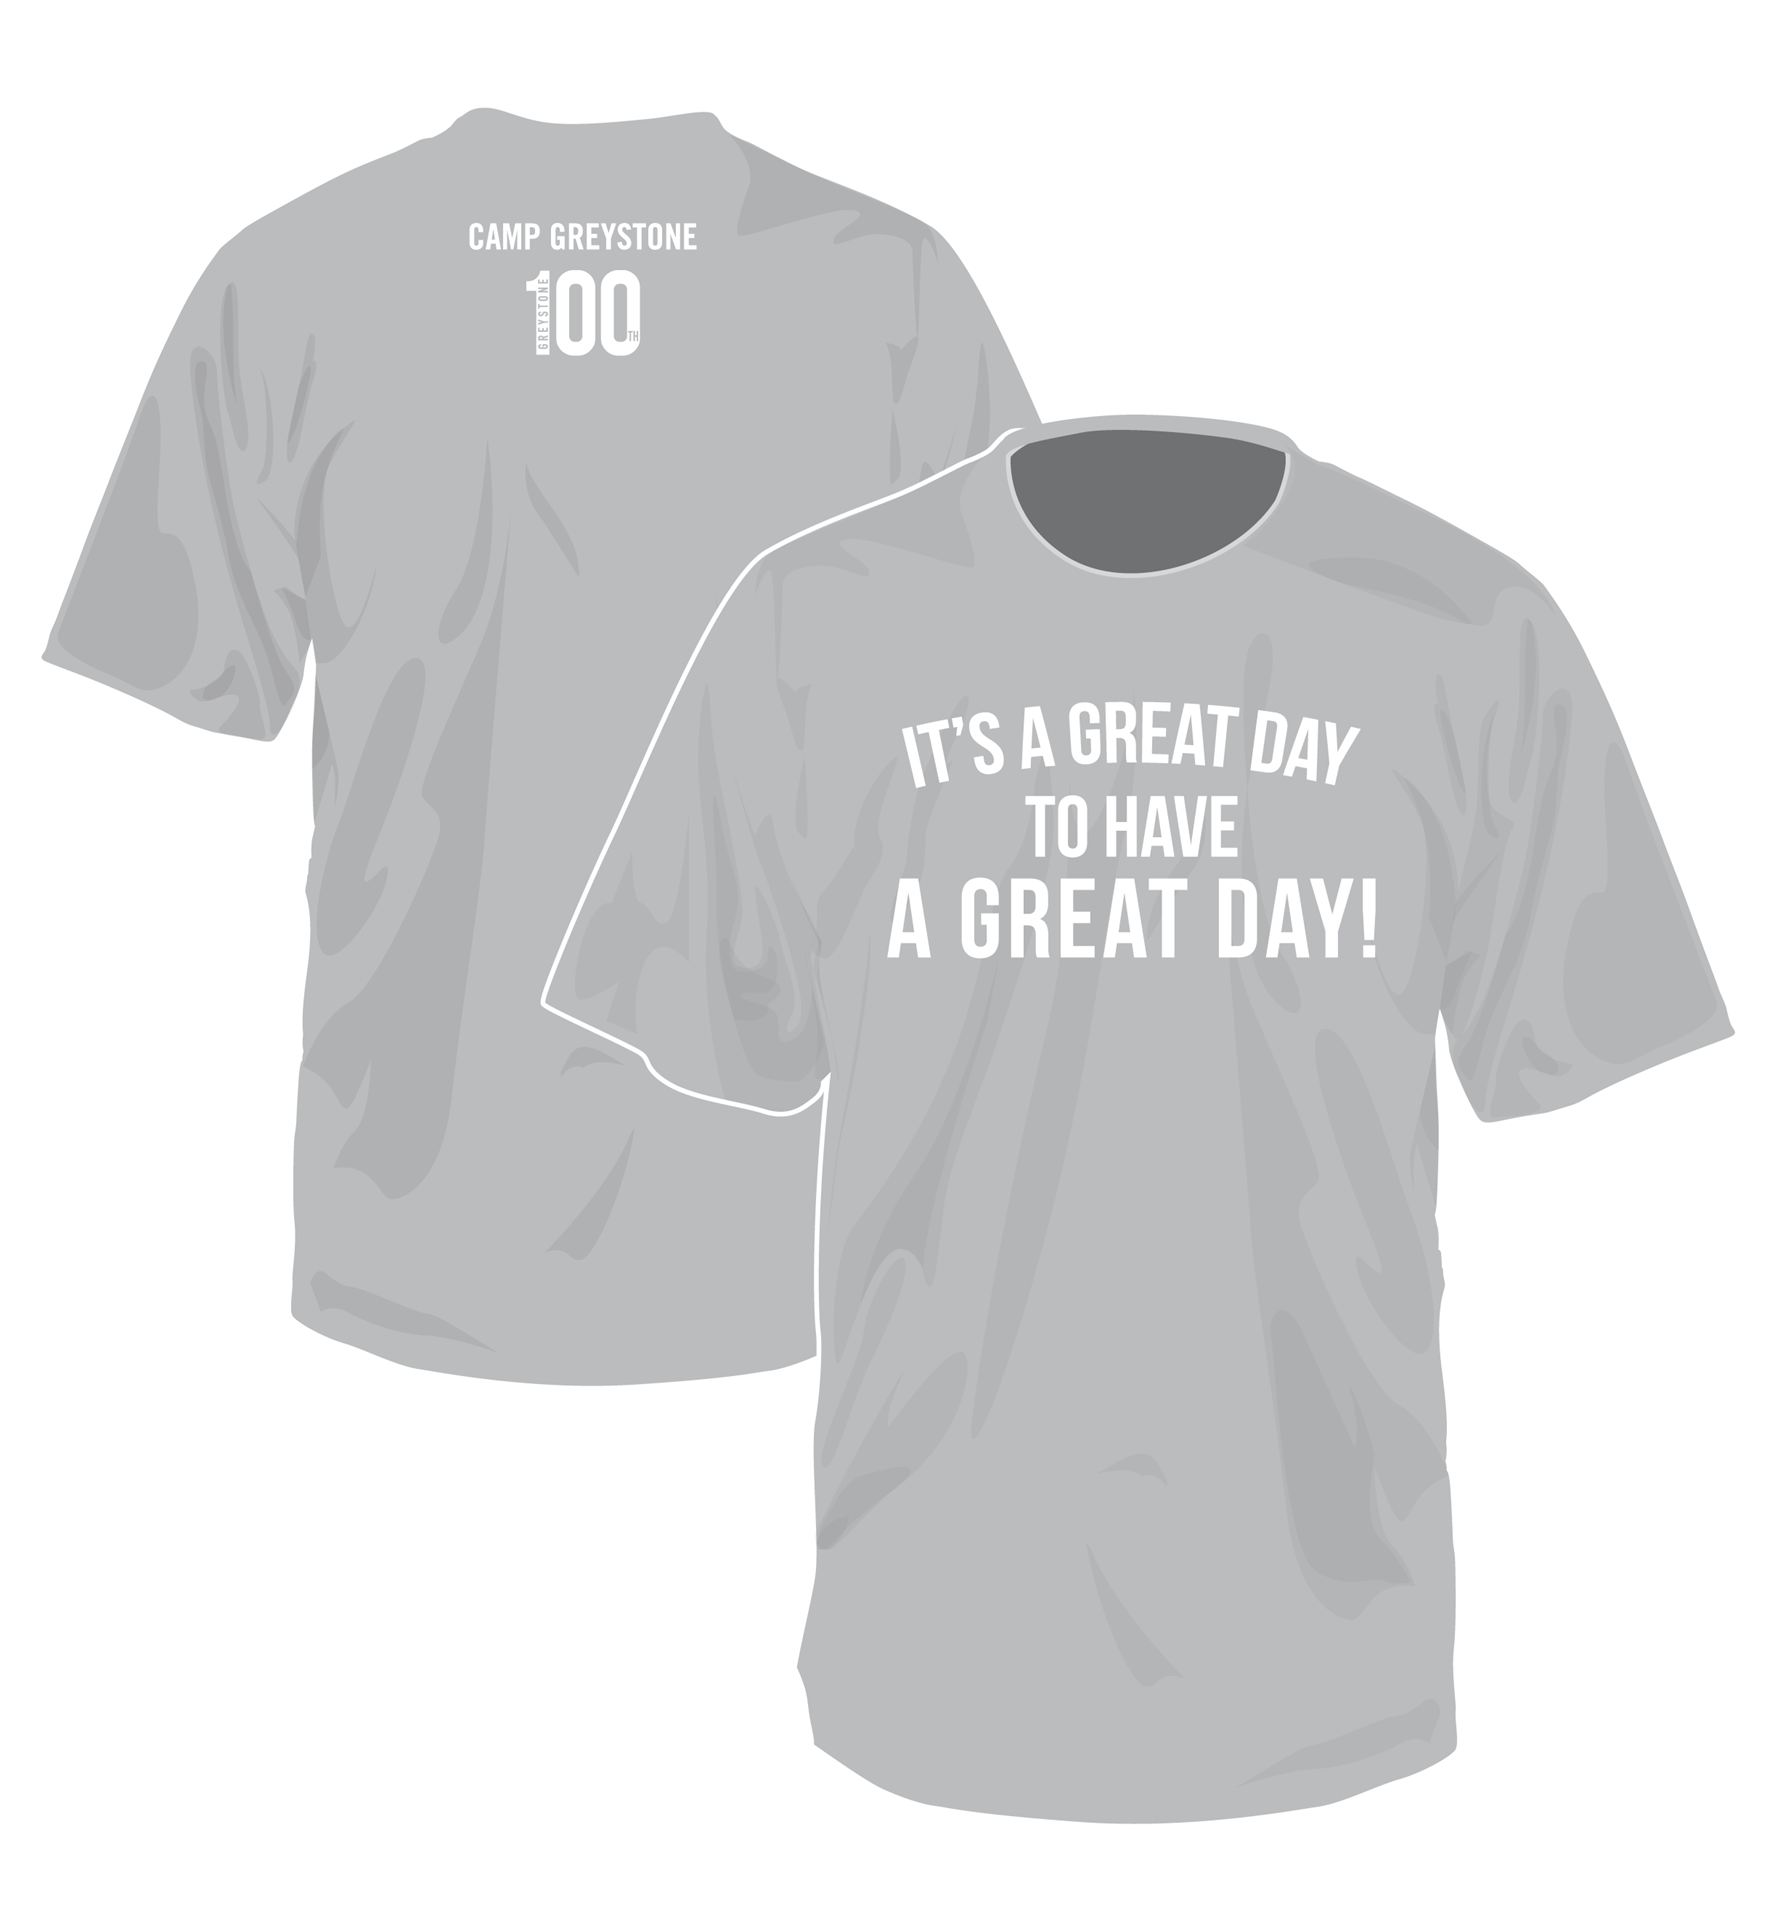 Picture of It's A Great Day Tee Shirt, 100th yr